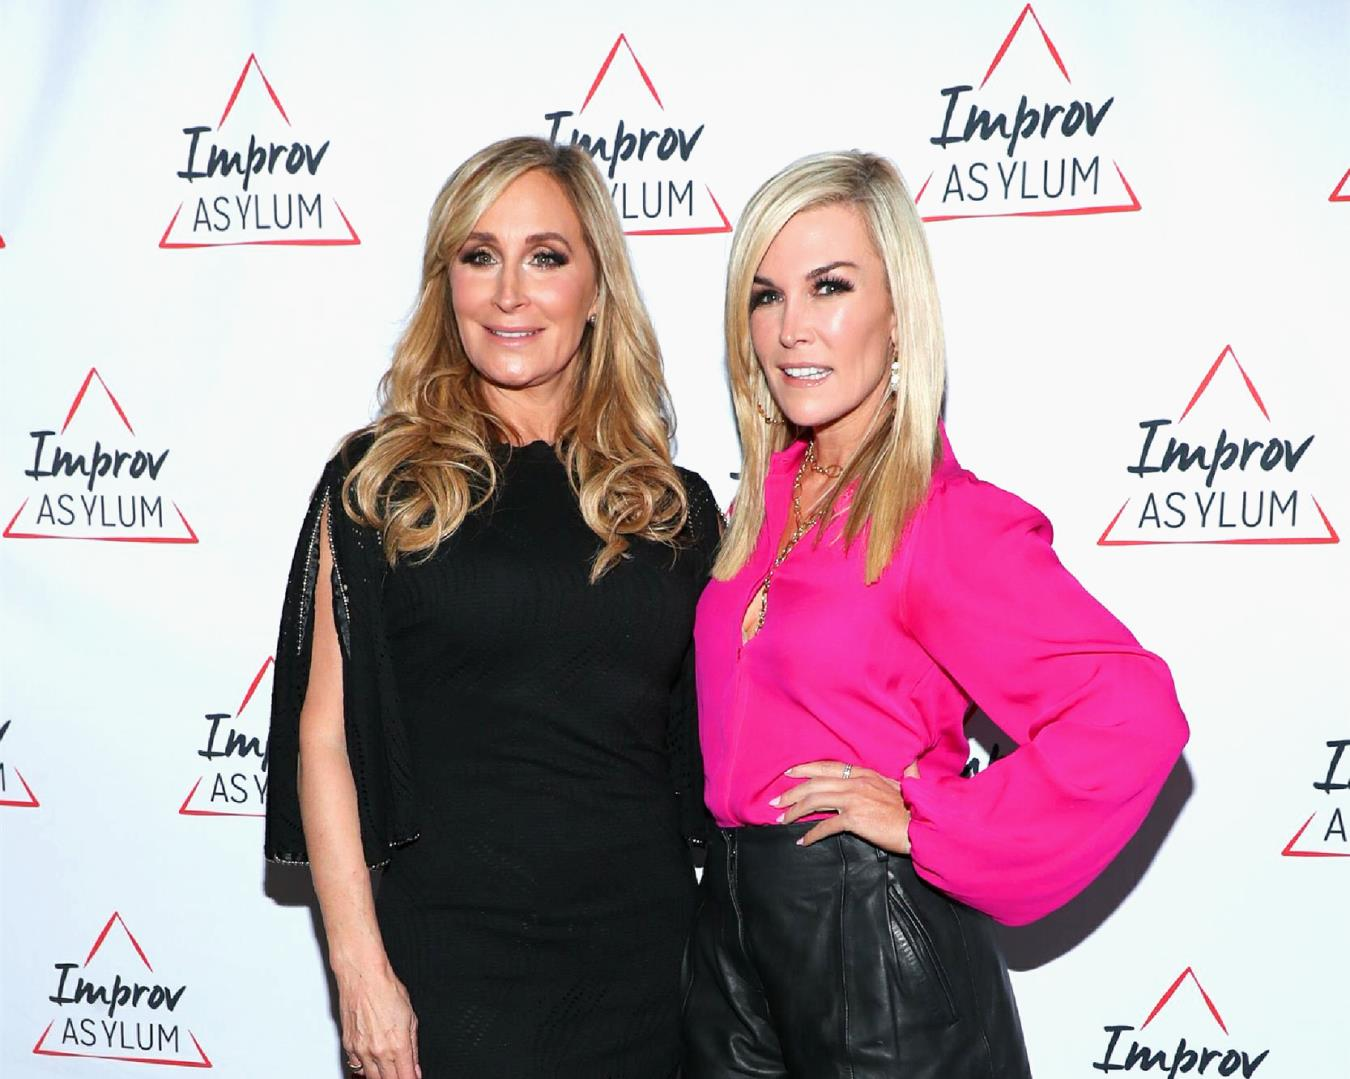 RHONY's Tinsley Mortimer Reveals What Led to Fight With Sonja Morgan at NYC Pride Event, Plus Mom Dale Mercer Dishes on Her Dates With Billy Bush